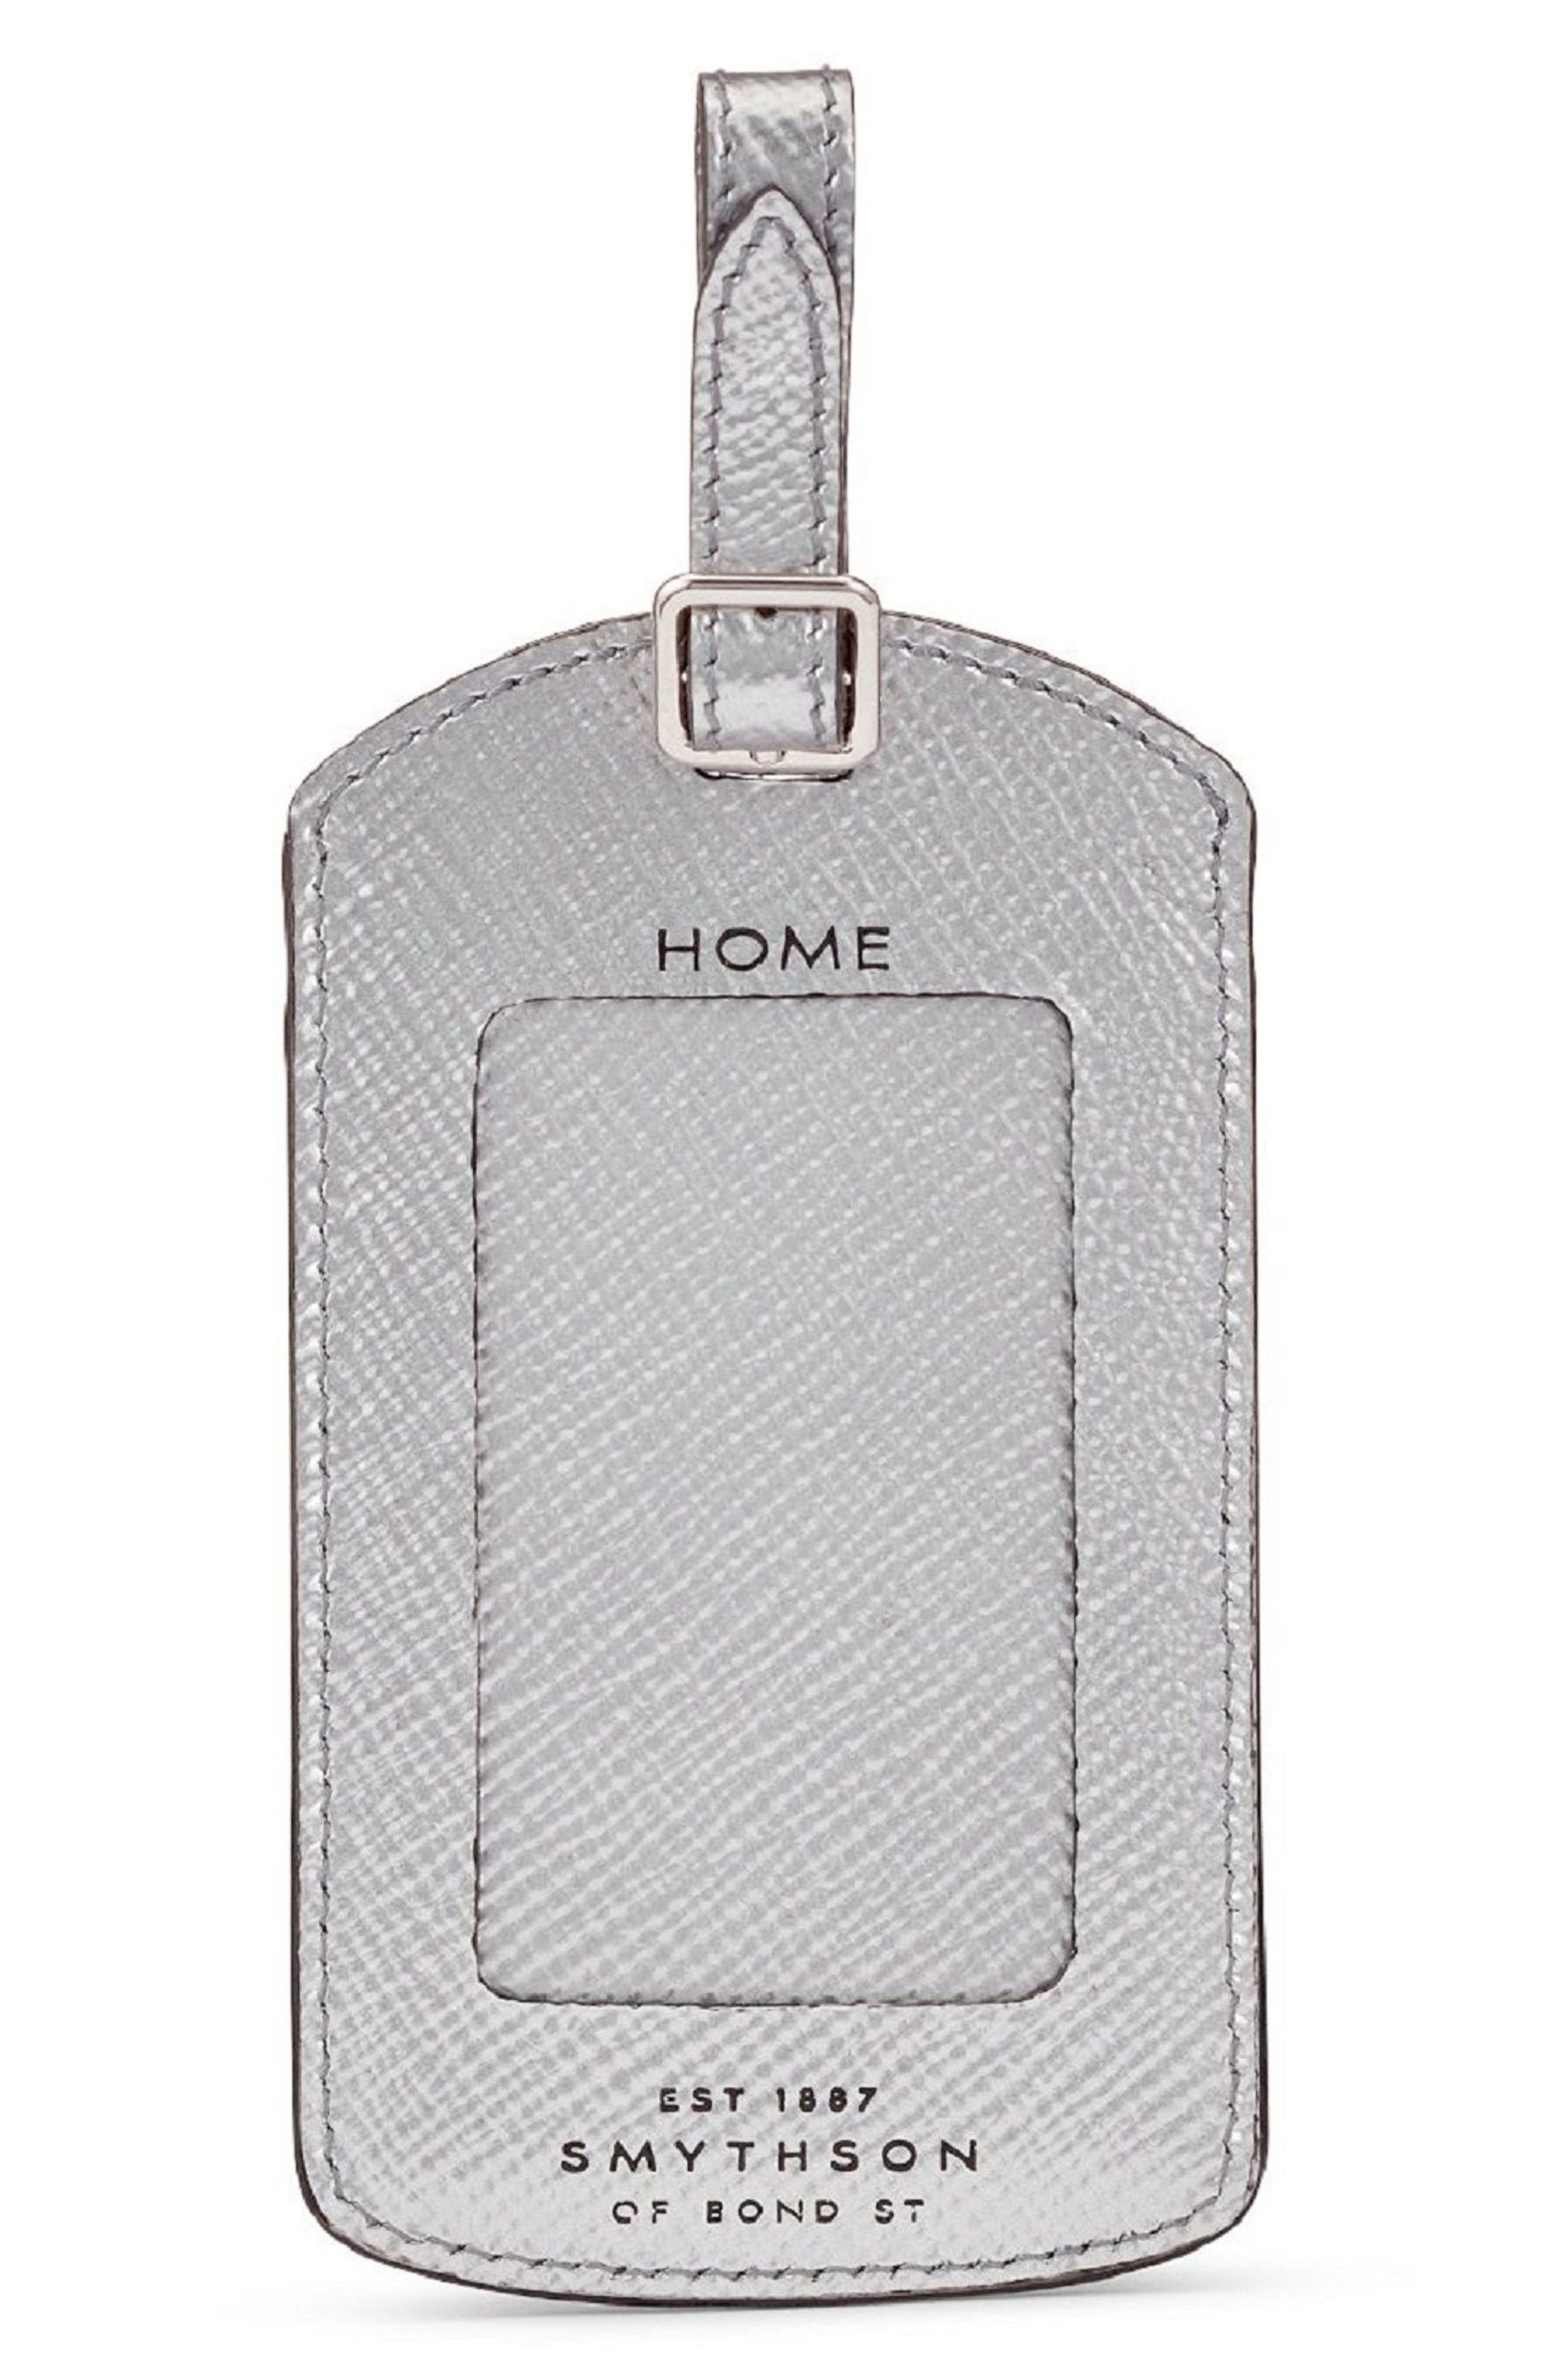 Home/Destination Calfskin Leather Luggage Tag,                         Main,                         color, Silver